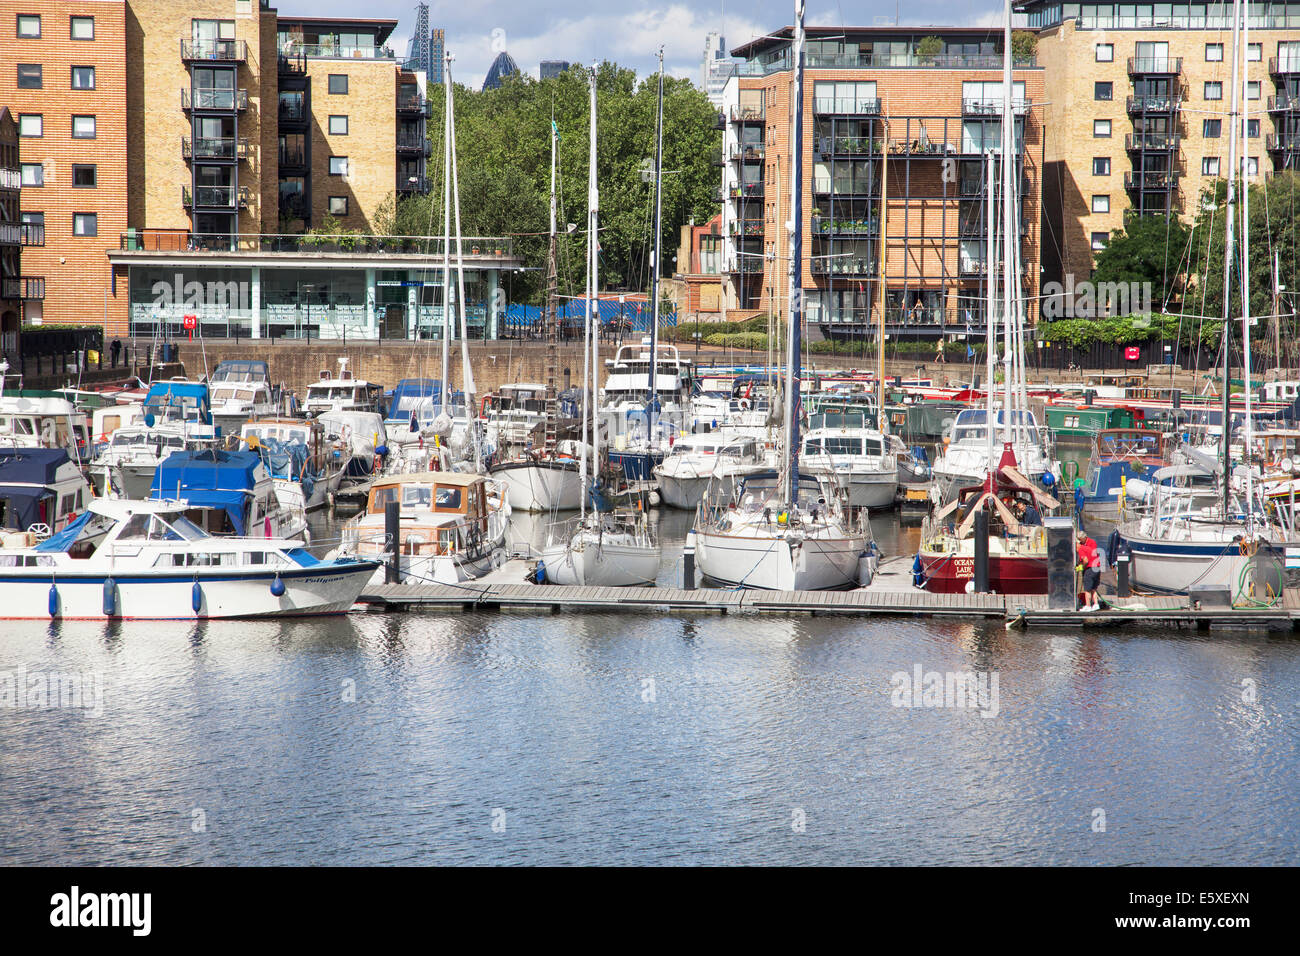 Limehouse Basin in East London on a sunny day Stock Photo